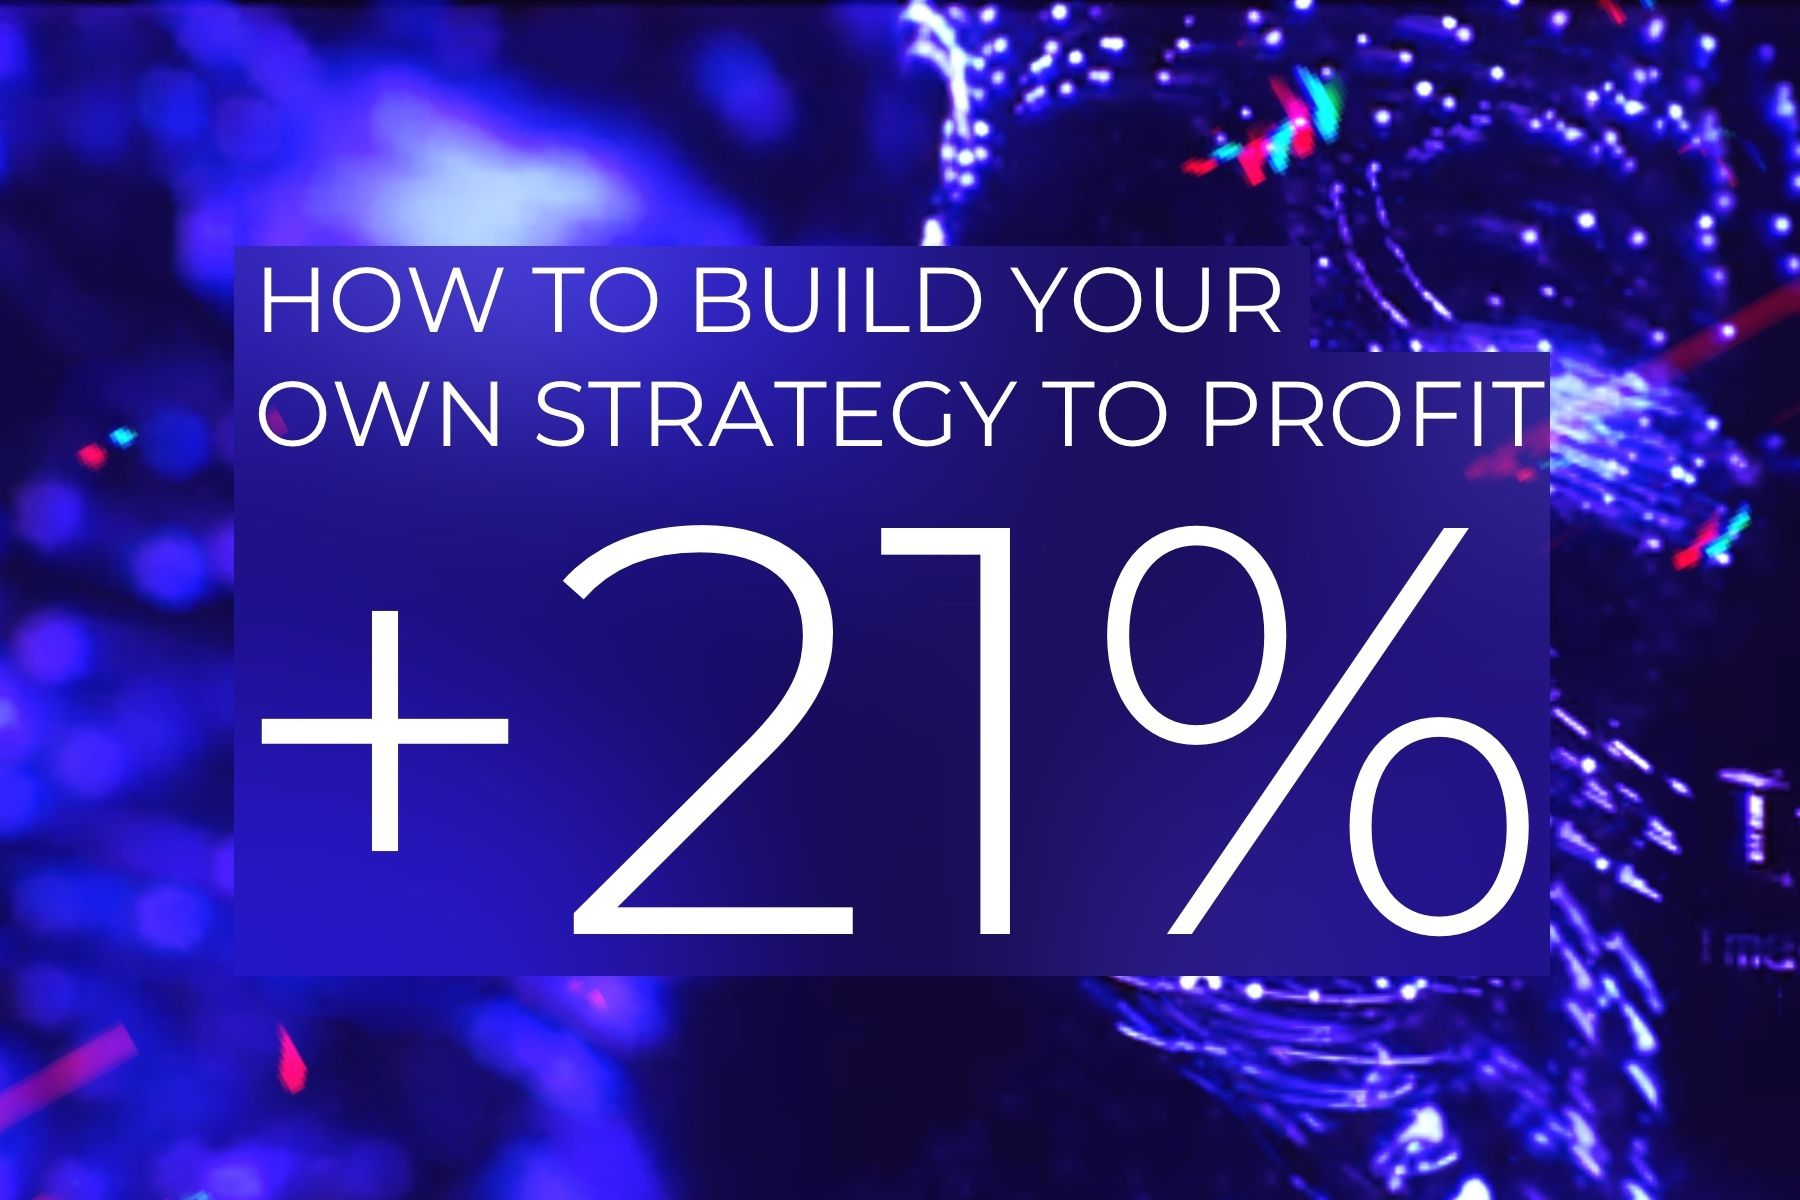 How to build your own strategy from scratch to profit +21% in just 2 months